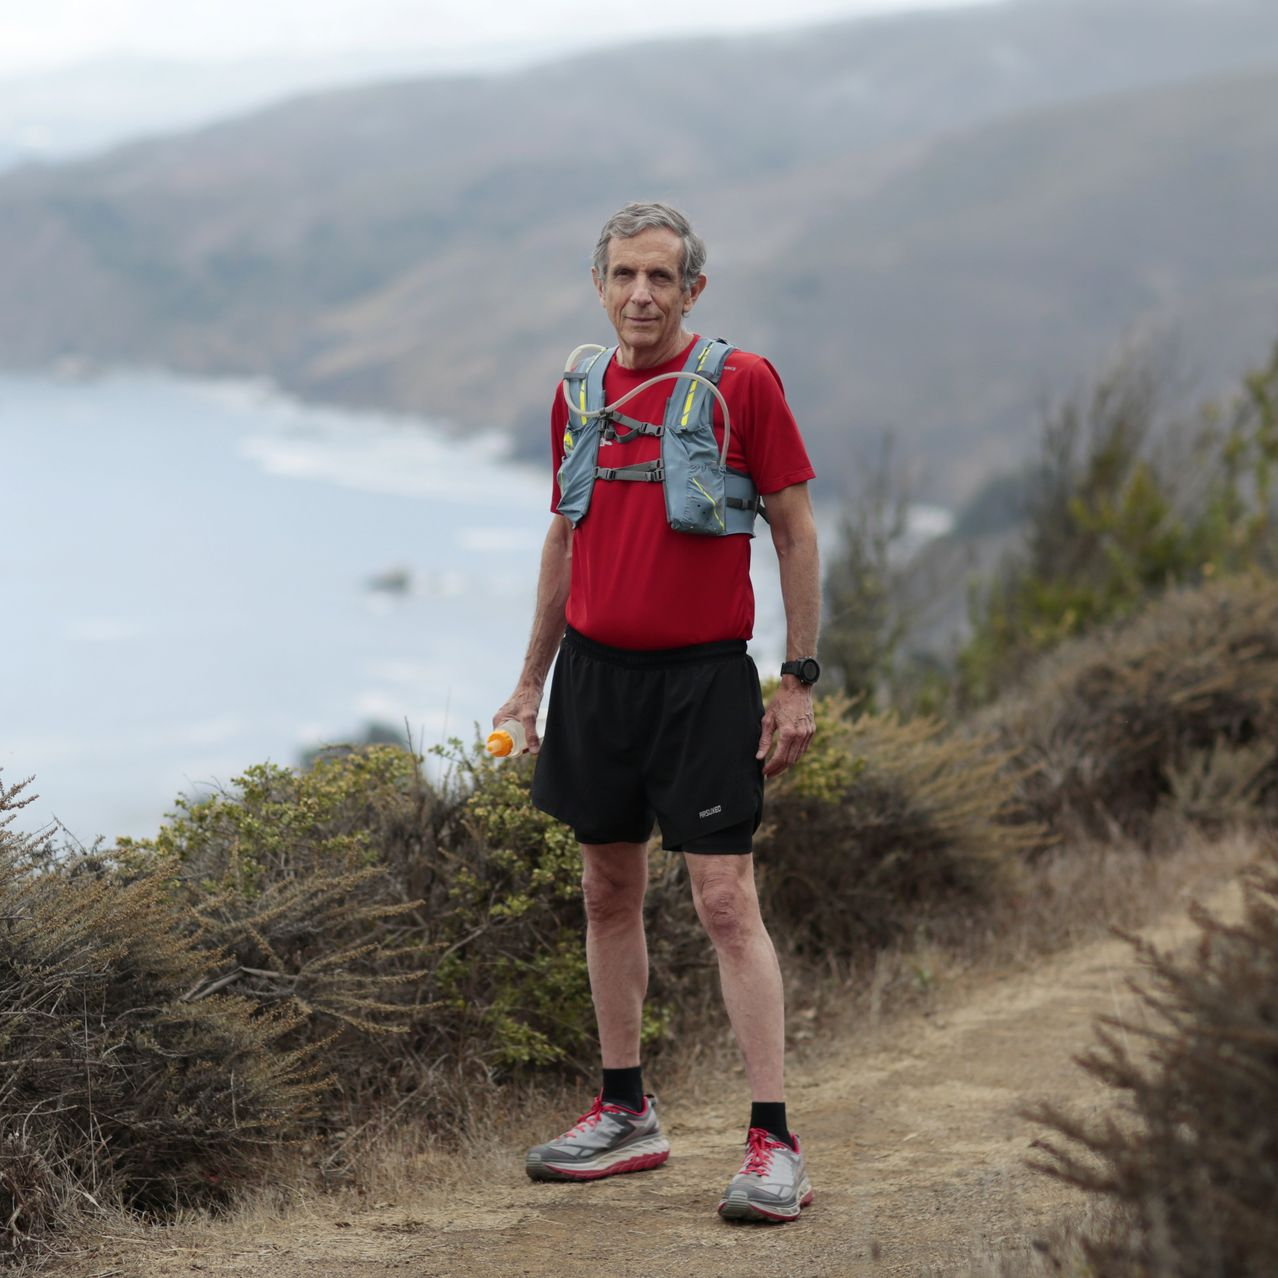 Eric Spector, 71, started trail running when he moved from New York City to Marin County, Calif., in 1988 and hasn't pounded the pavement since. Owl Trail near Muir Beach is one of his favorite local runs.